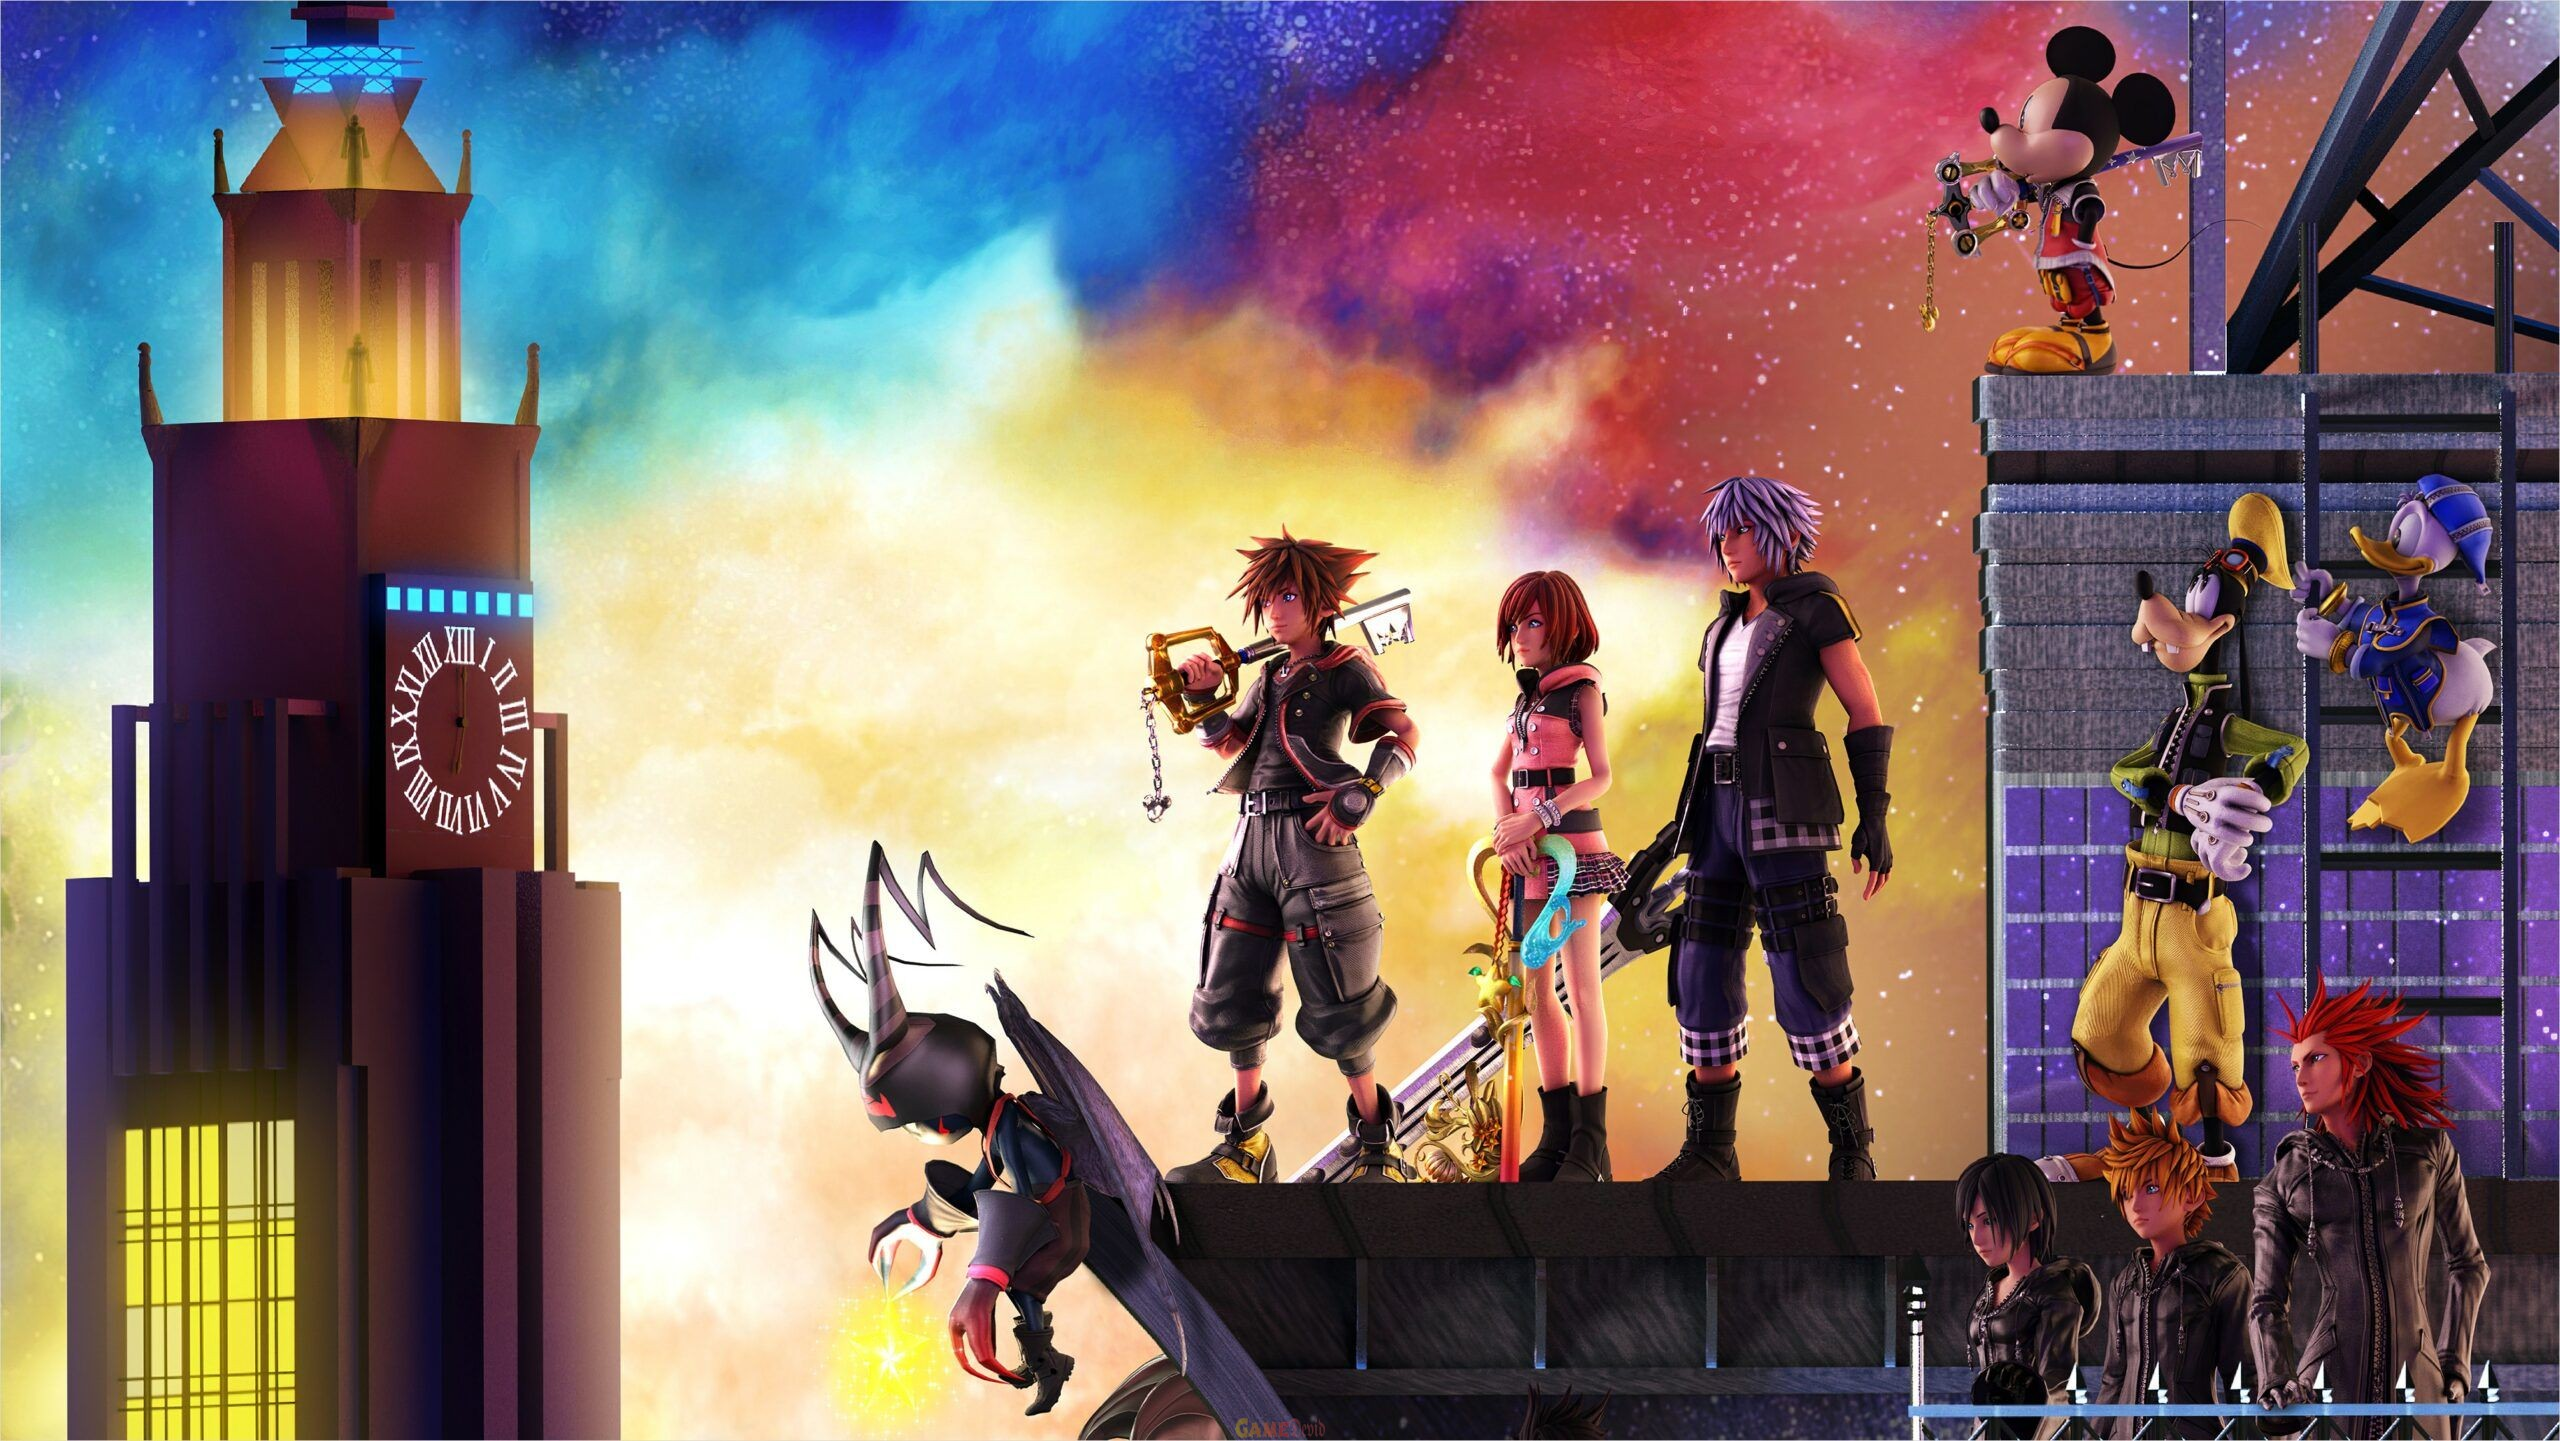 Kingdom Hearts 3 Official PC Latest Game Download Now